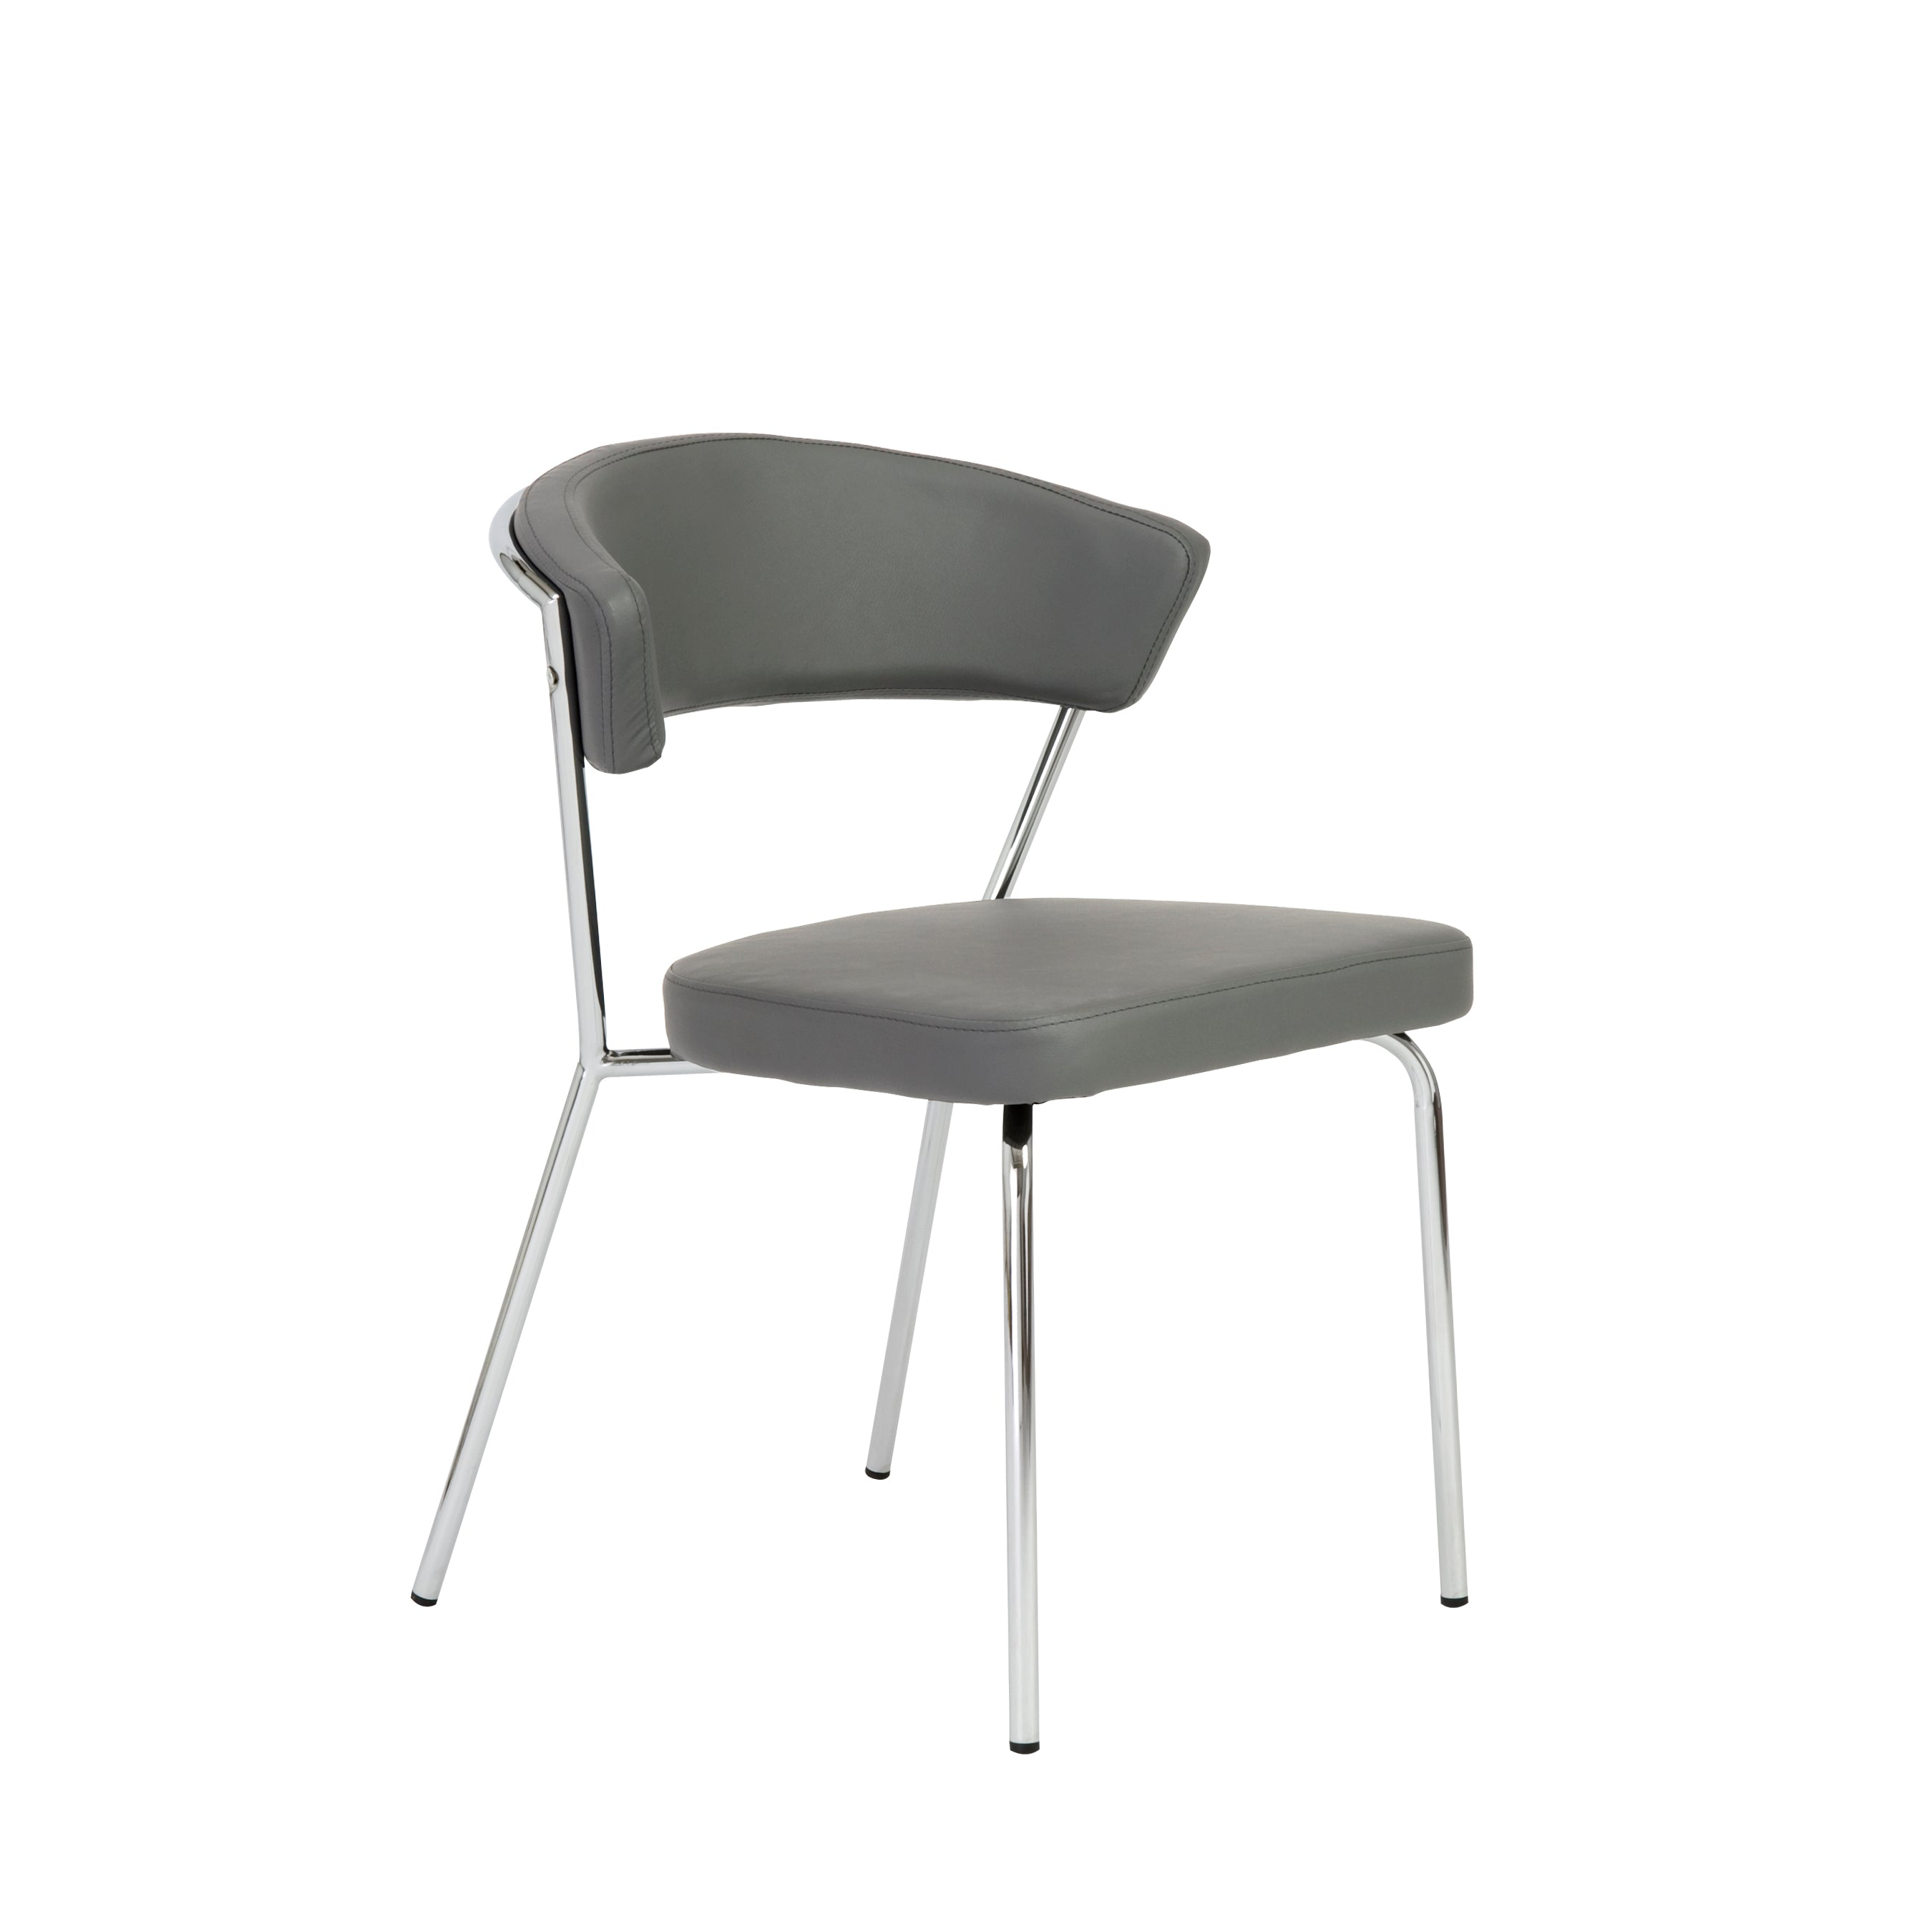 Curved-Back Gray Leatherette Guest or Conference Chair (Set of 4)